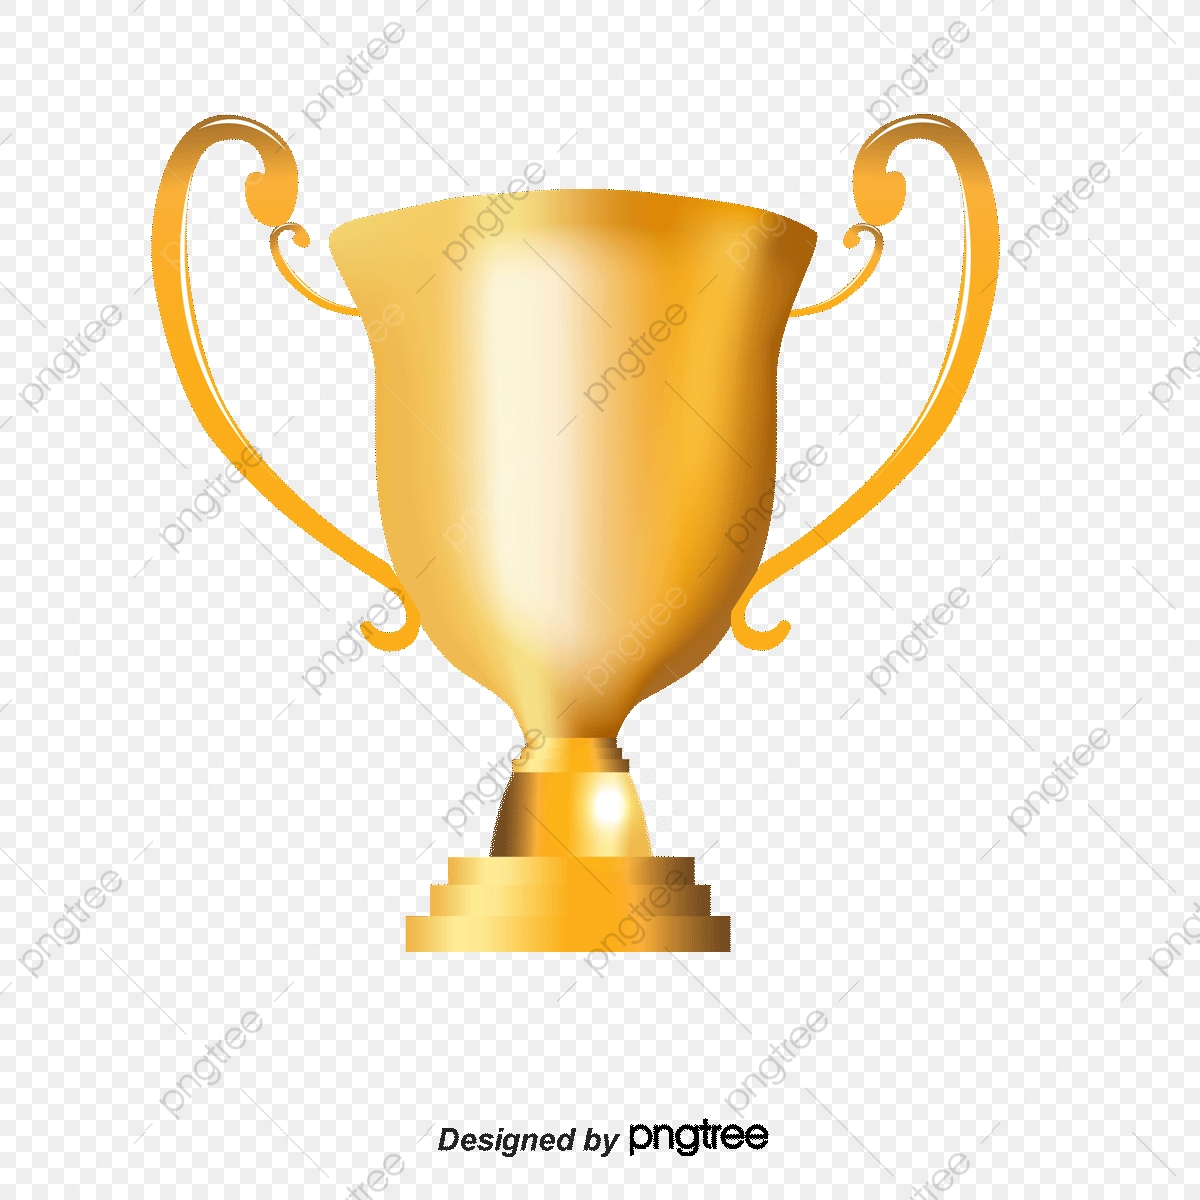 hight resolution of  trophy clipart png and copyright complaint